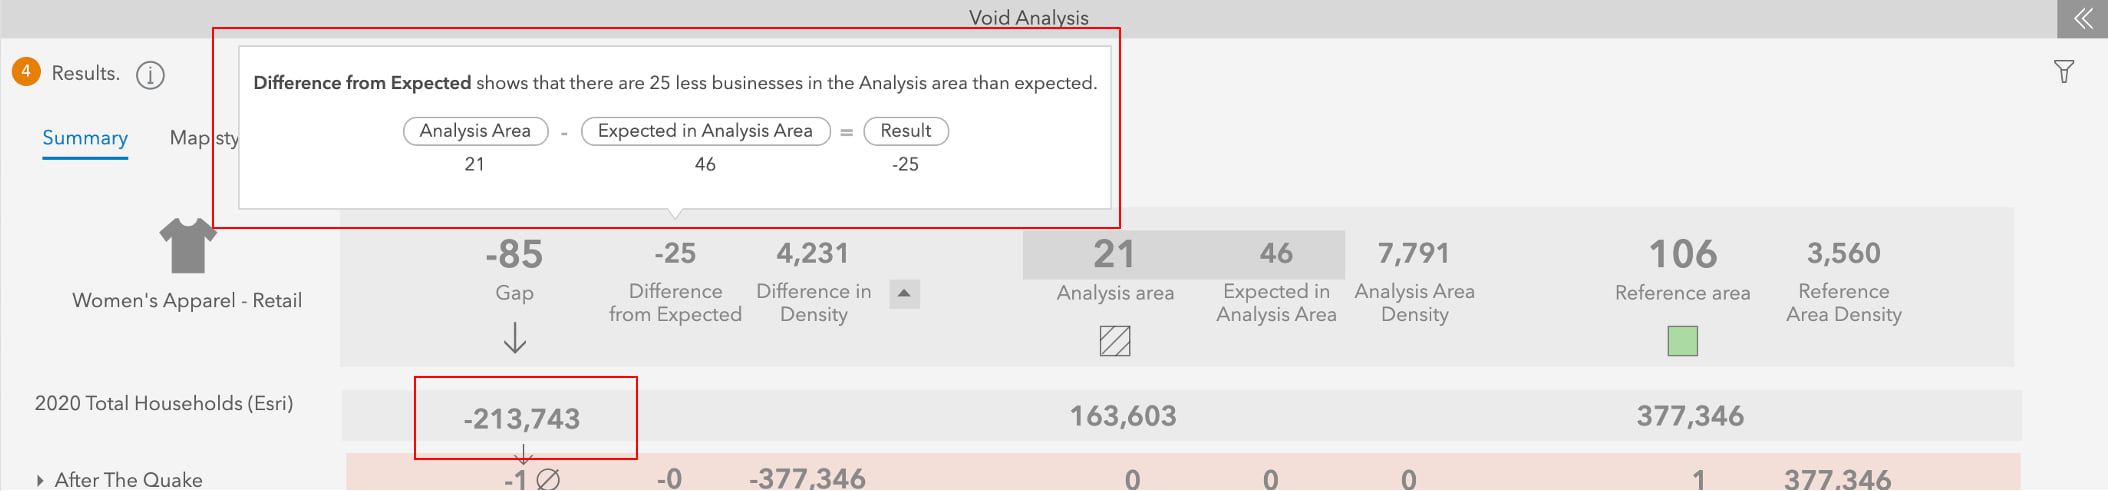 Void Analysis normalization in ArcGIS Business Analyst Web App – normalized result tooltip explanation